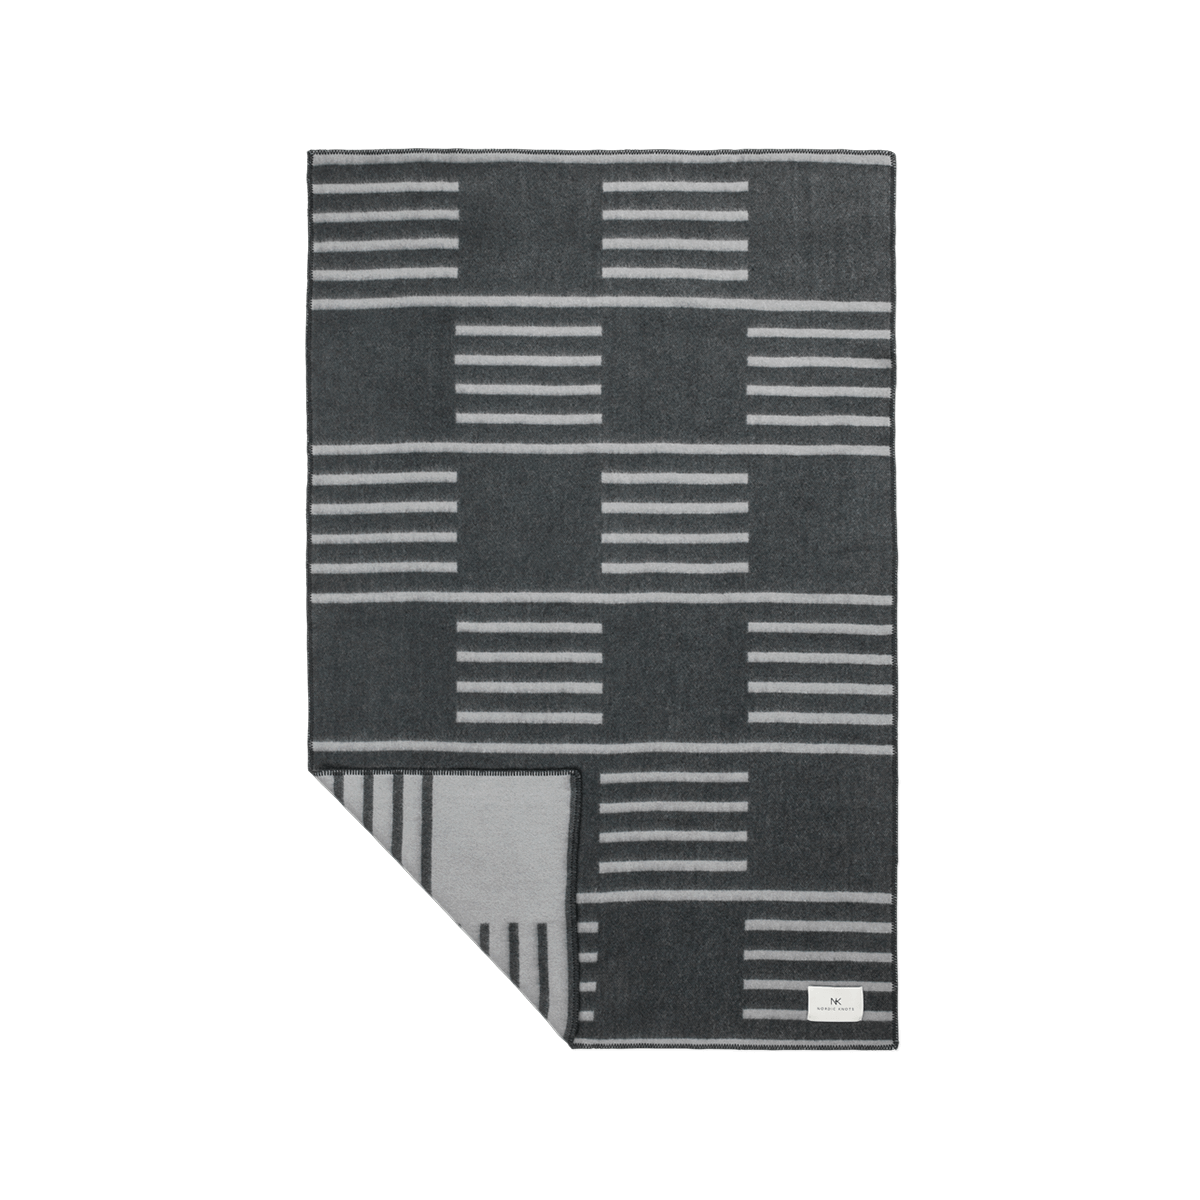 Product image of the wool blanket Classic in Steel Blue with a light gray, striped pattern.